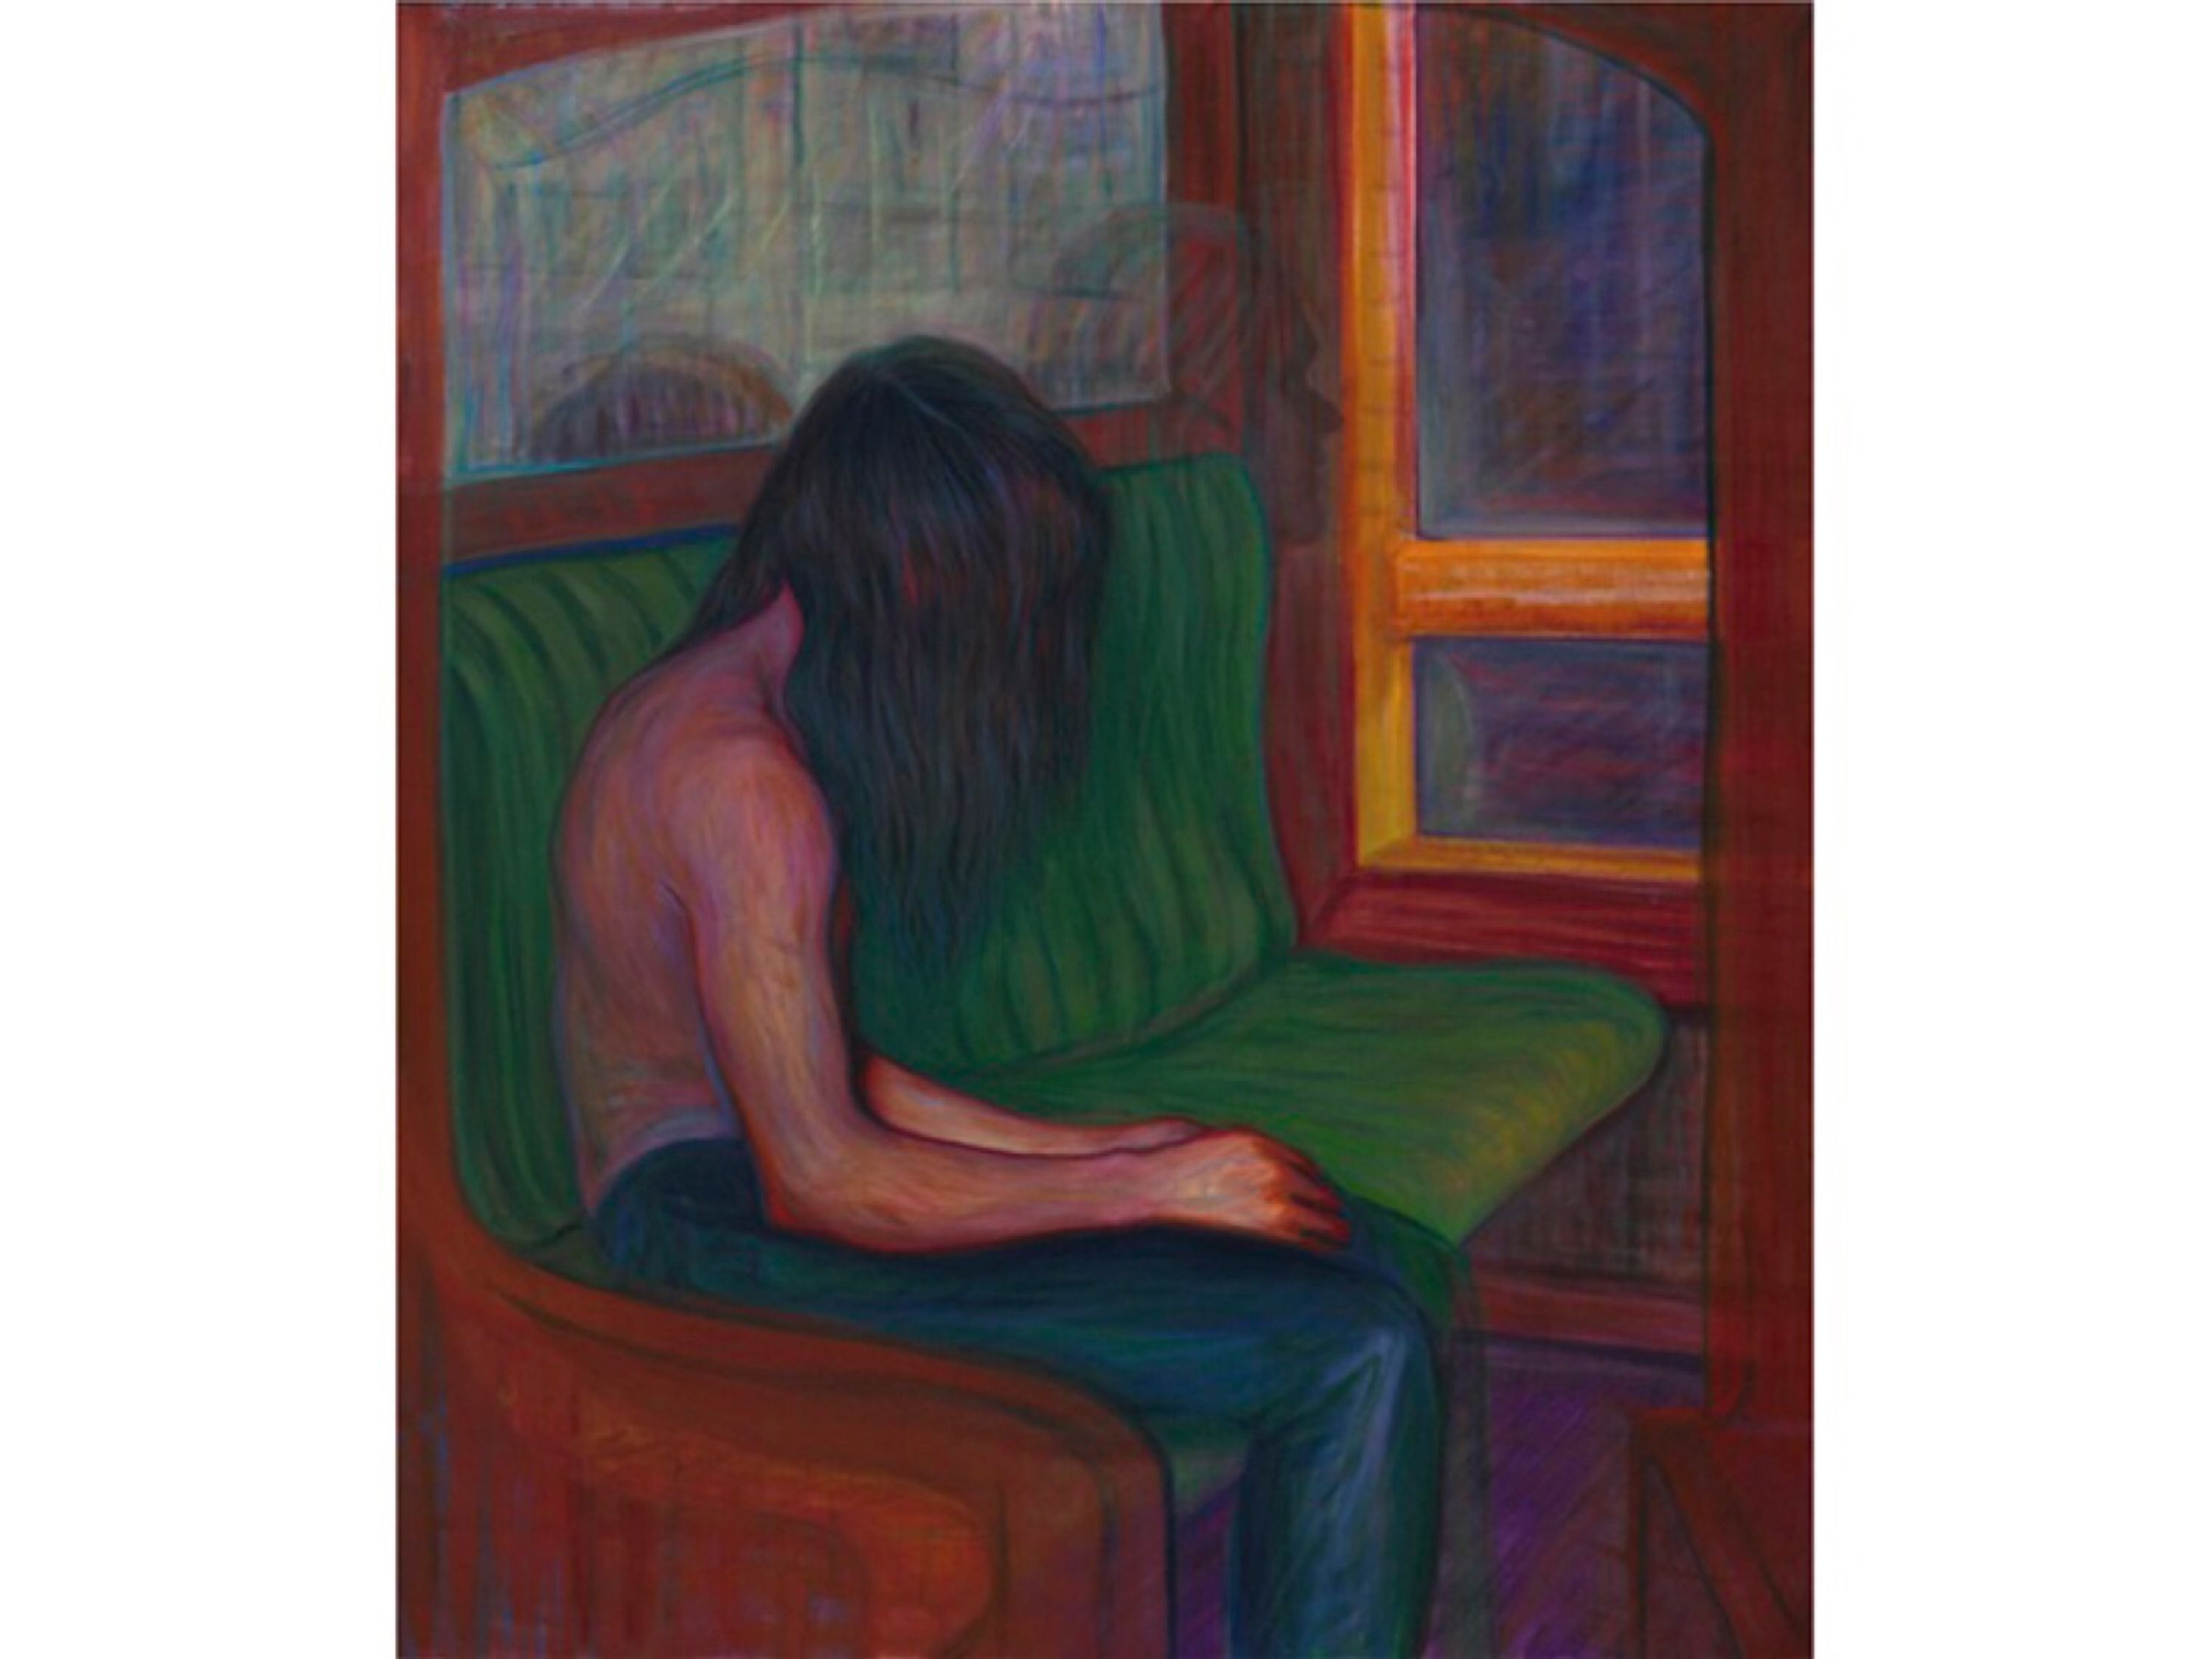 Man Sitting by Steven Shearer, Charles Riva Collection